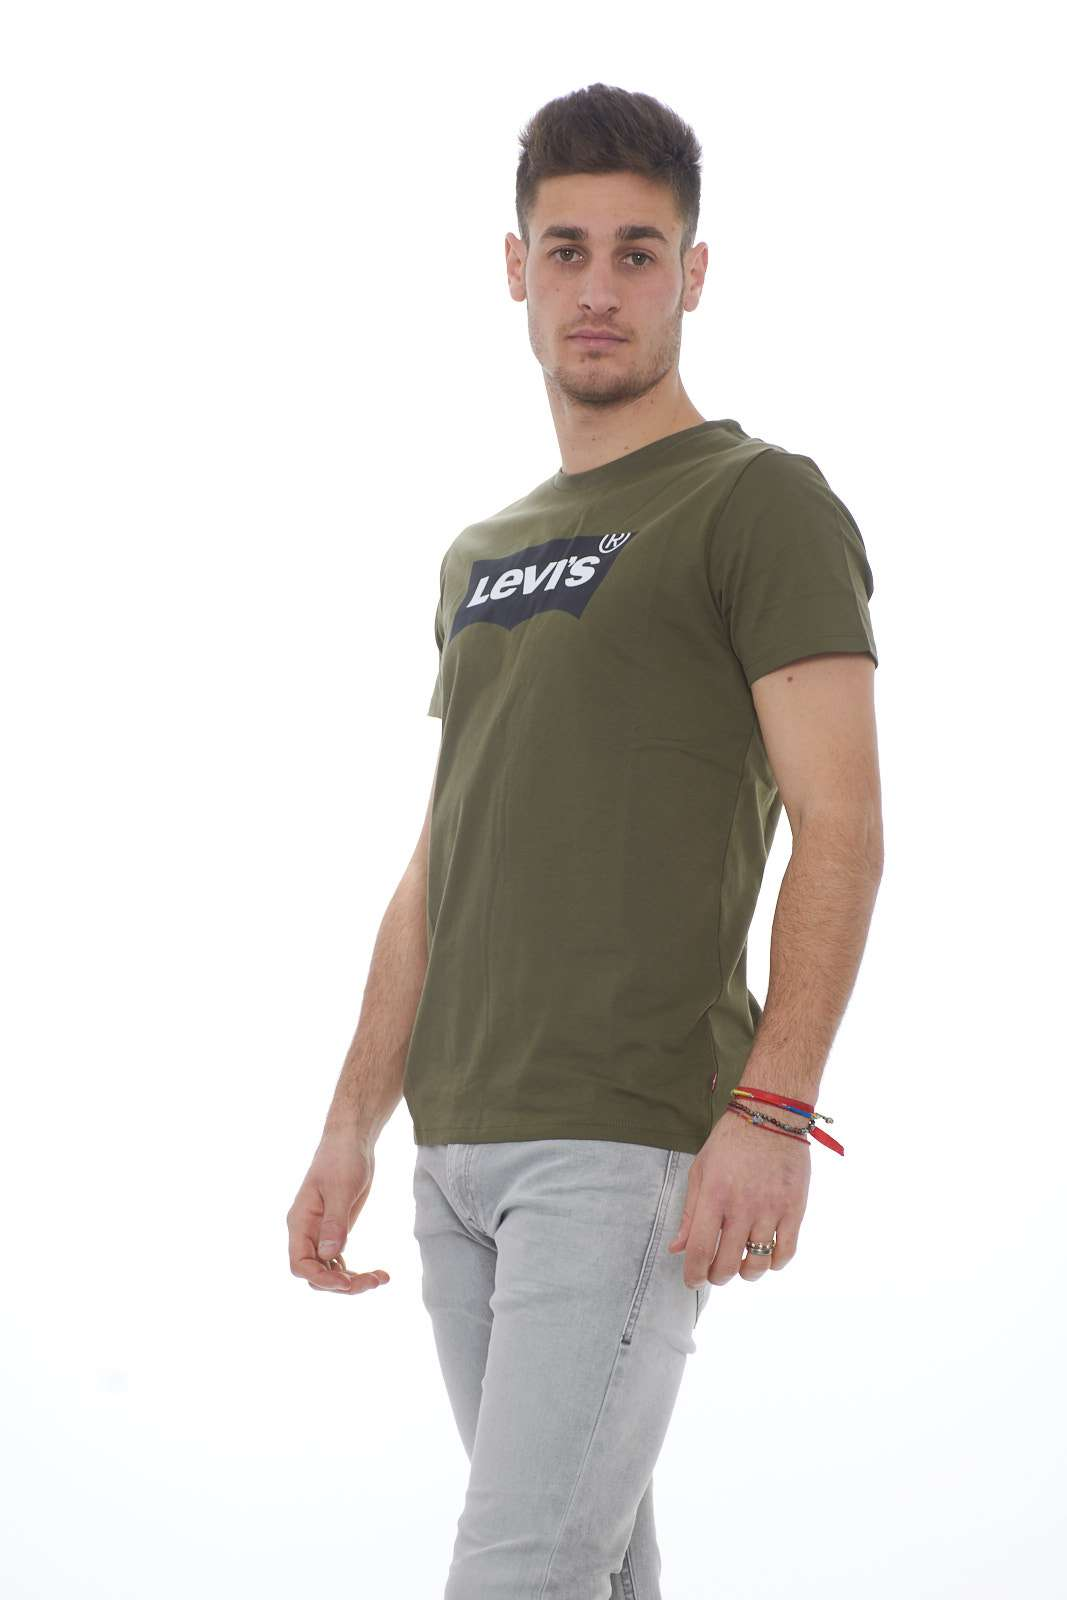 https://www.parmax.com/media/catalog/product/a/i/PE-outlet_parmax-t-shirt-uomo-Levis-22489-B.jpg